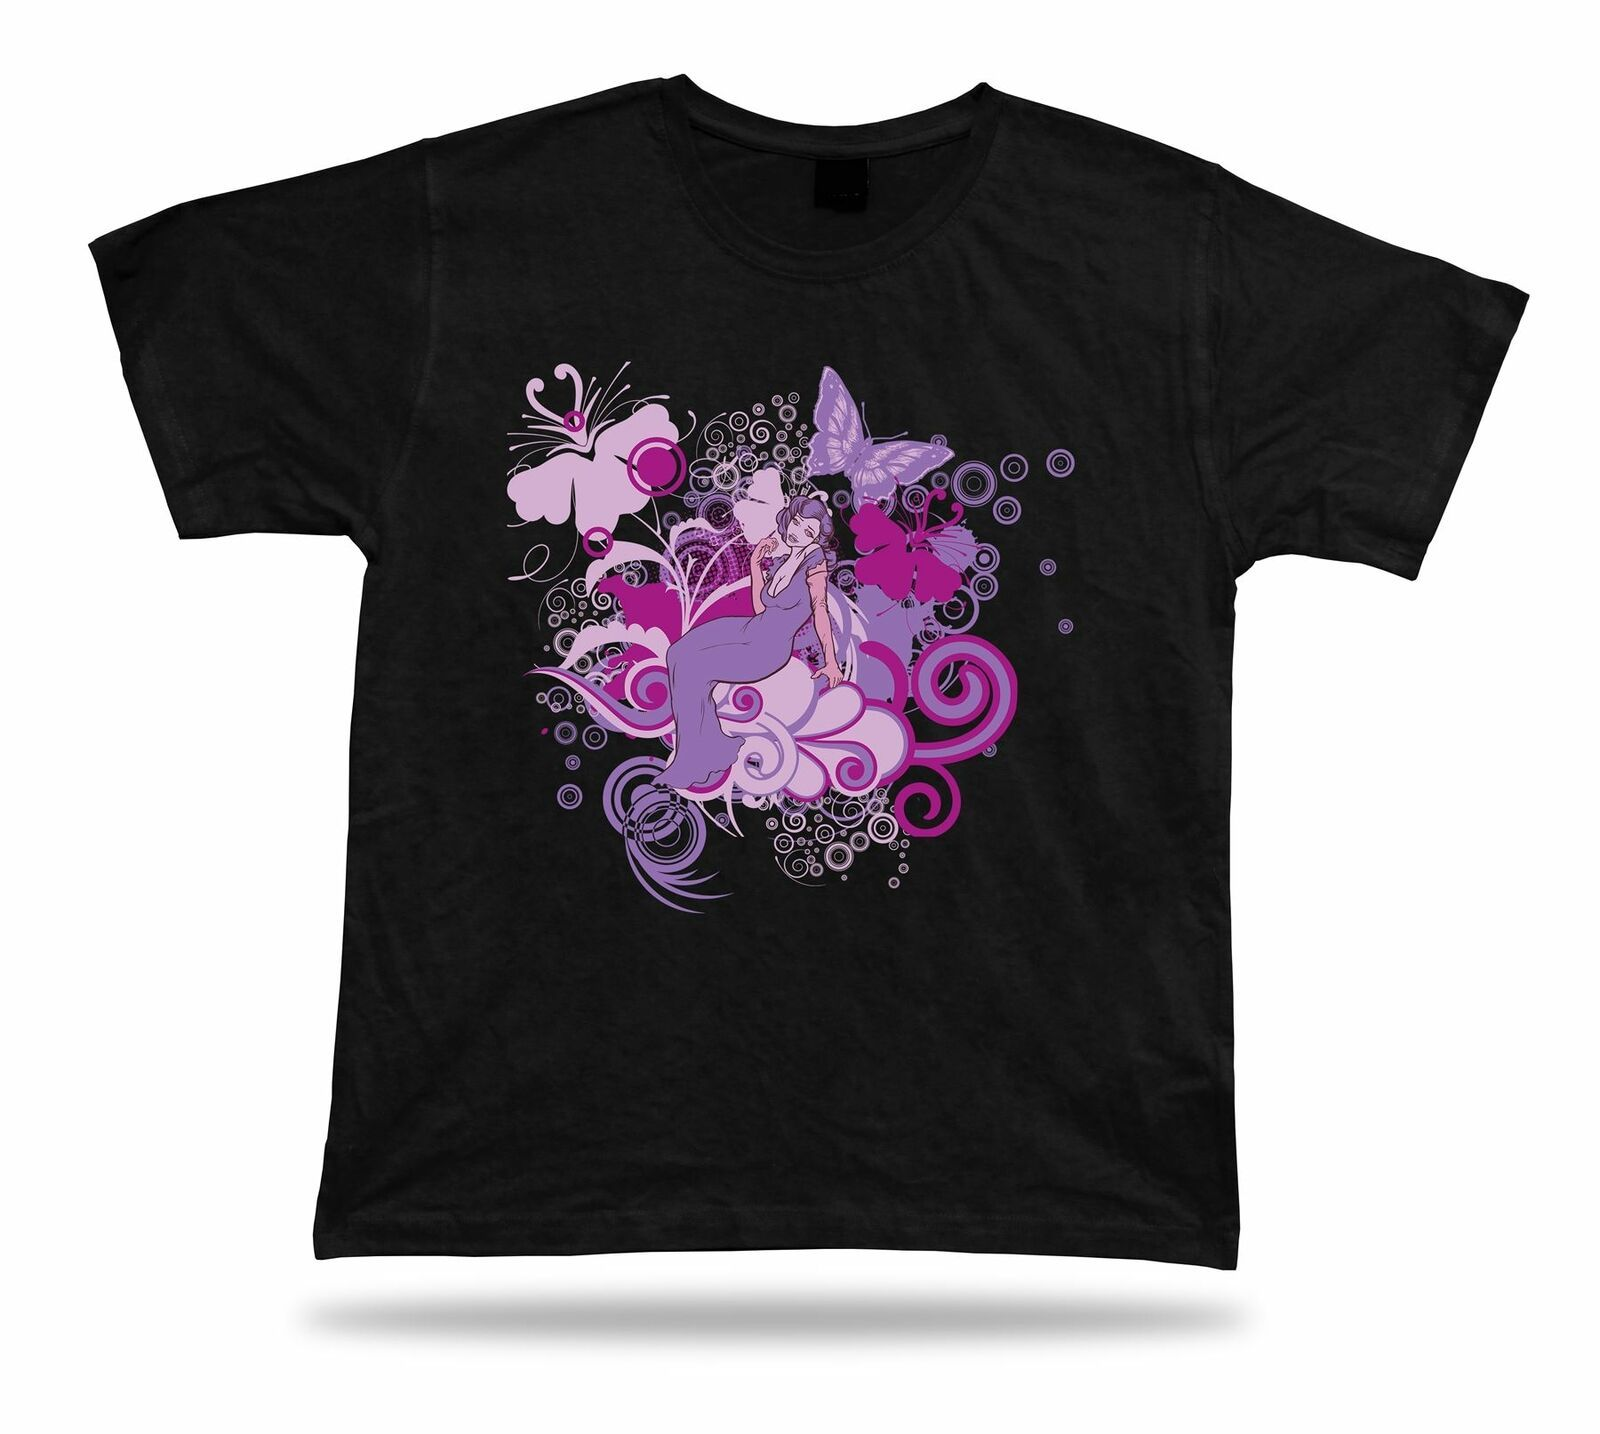 Primary image for Mega Star Butterfly Floral tee awesome cool modern t shirt tee design apparel